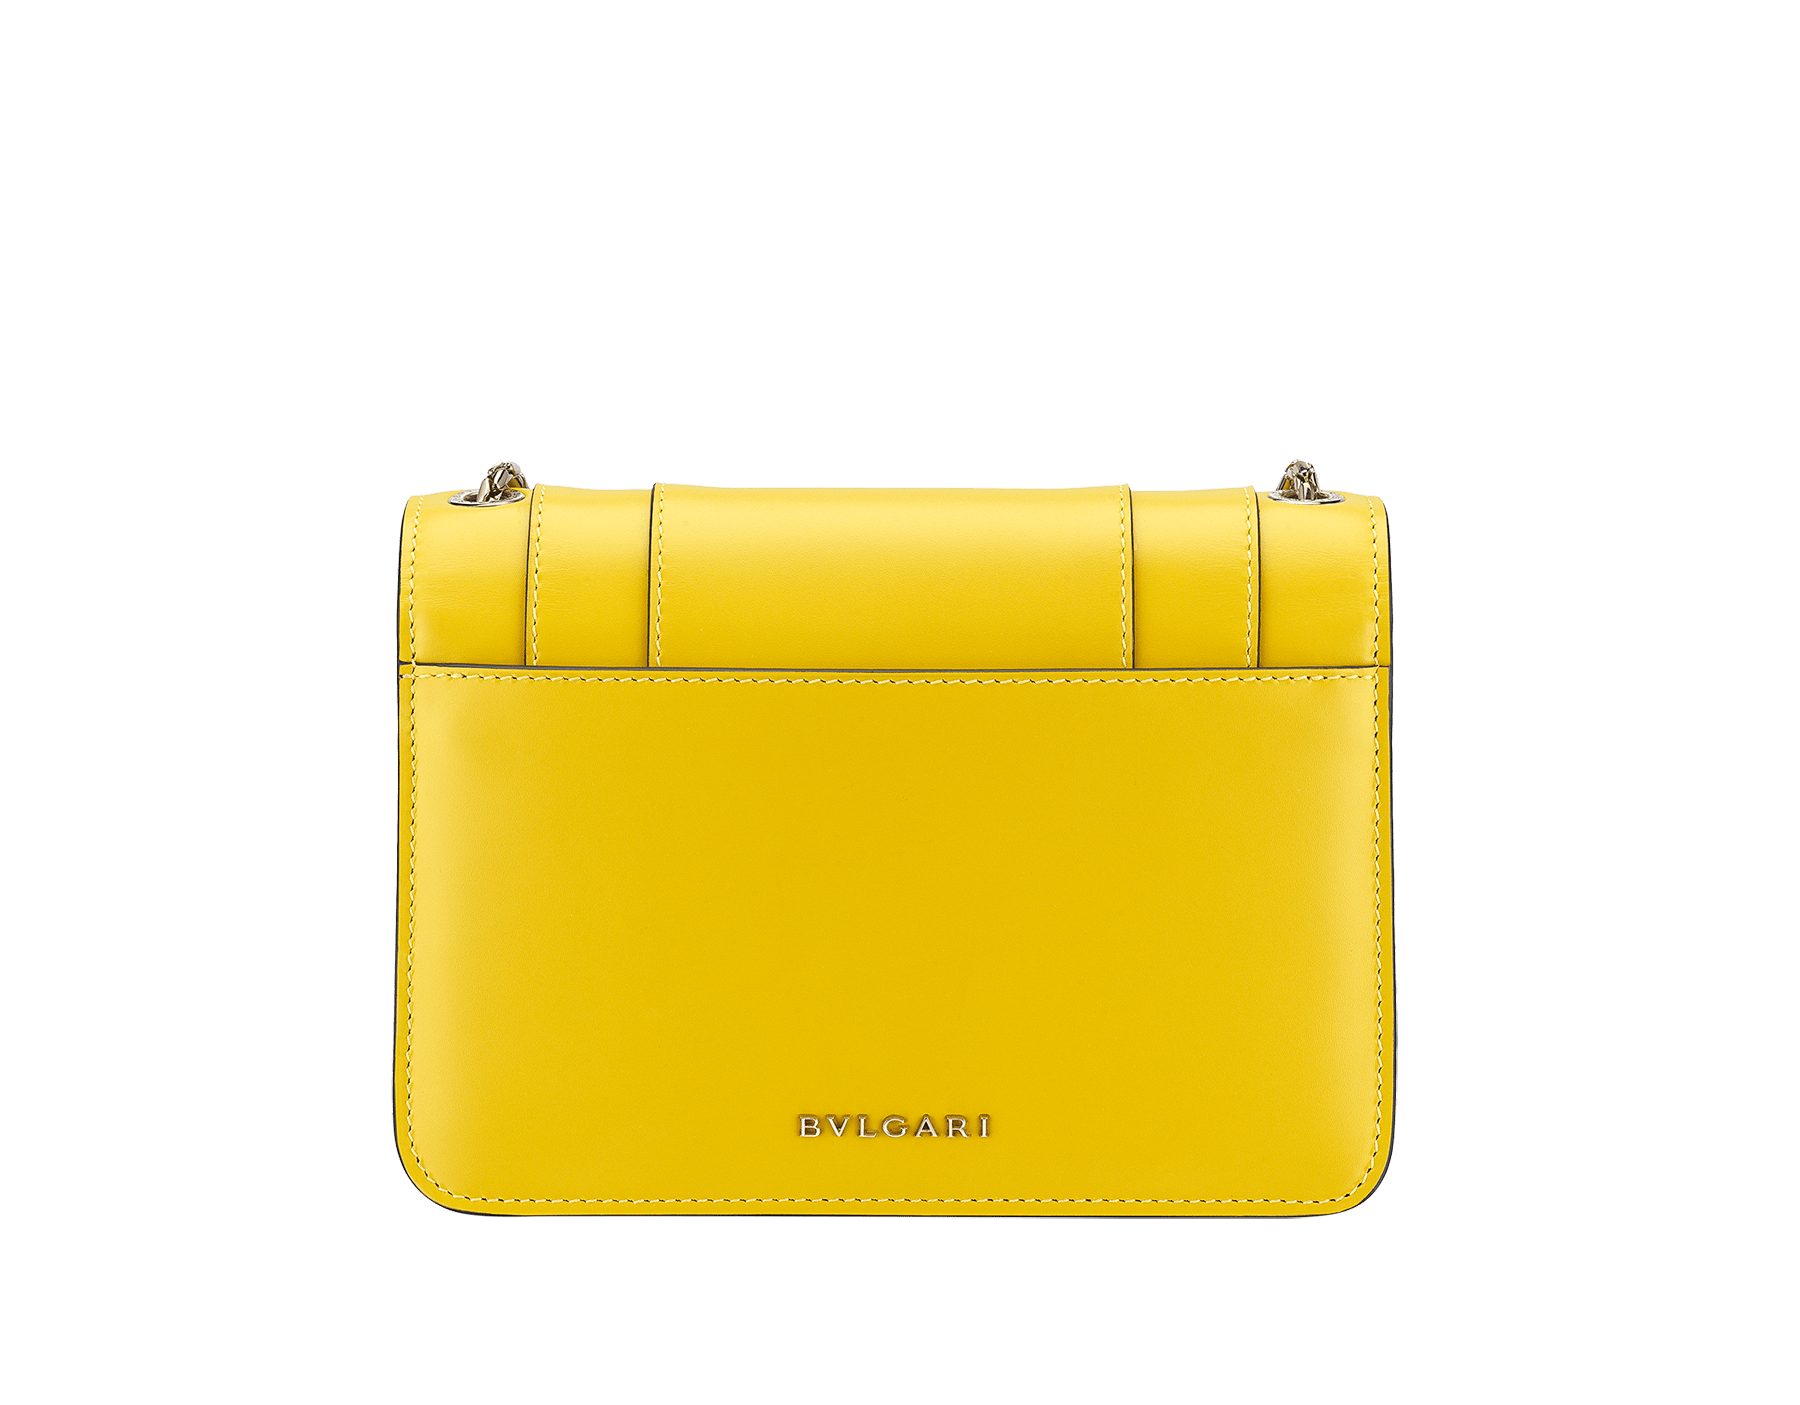 """Serpenti Forever"" crossbody bag in daisy topaz calf leather. Iconic snake head closure in light gold plated brass enriched with black and white enamel and green malachite eyes. 289672 image 3"